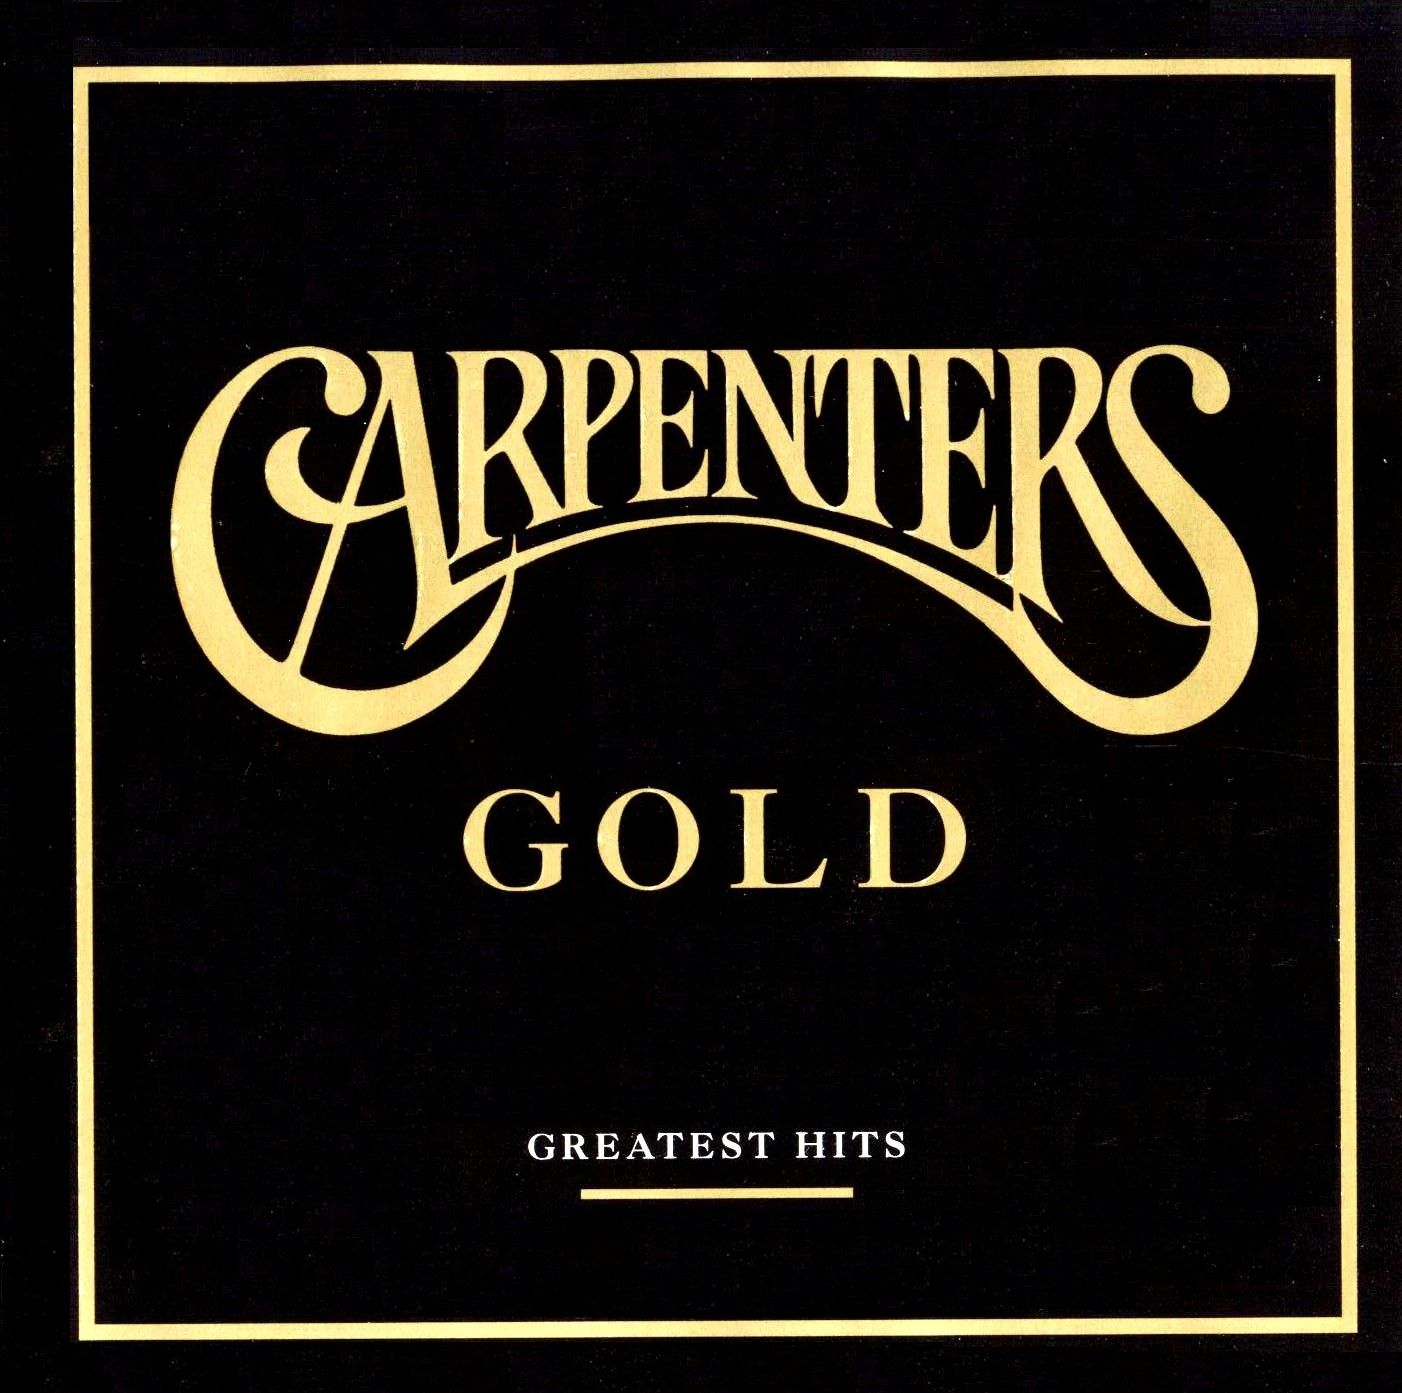 The Carpenters - Gold - Greatest Hits album cover